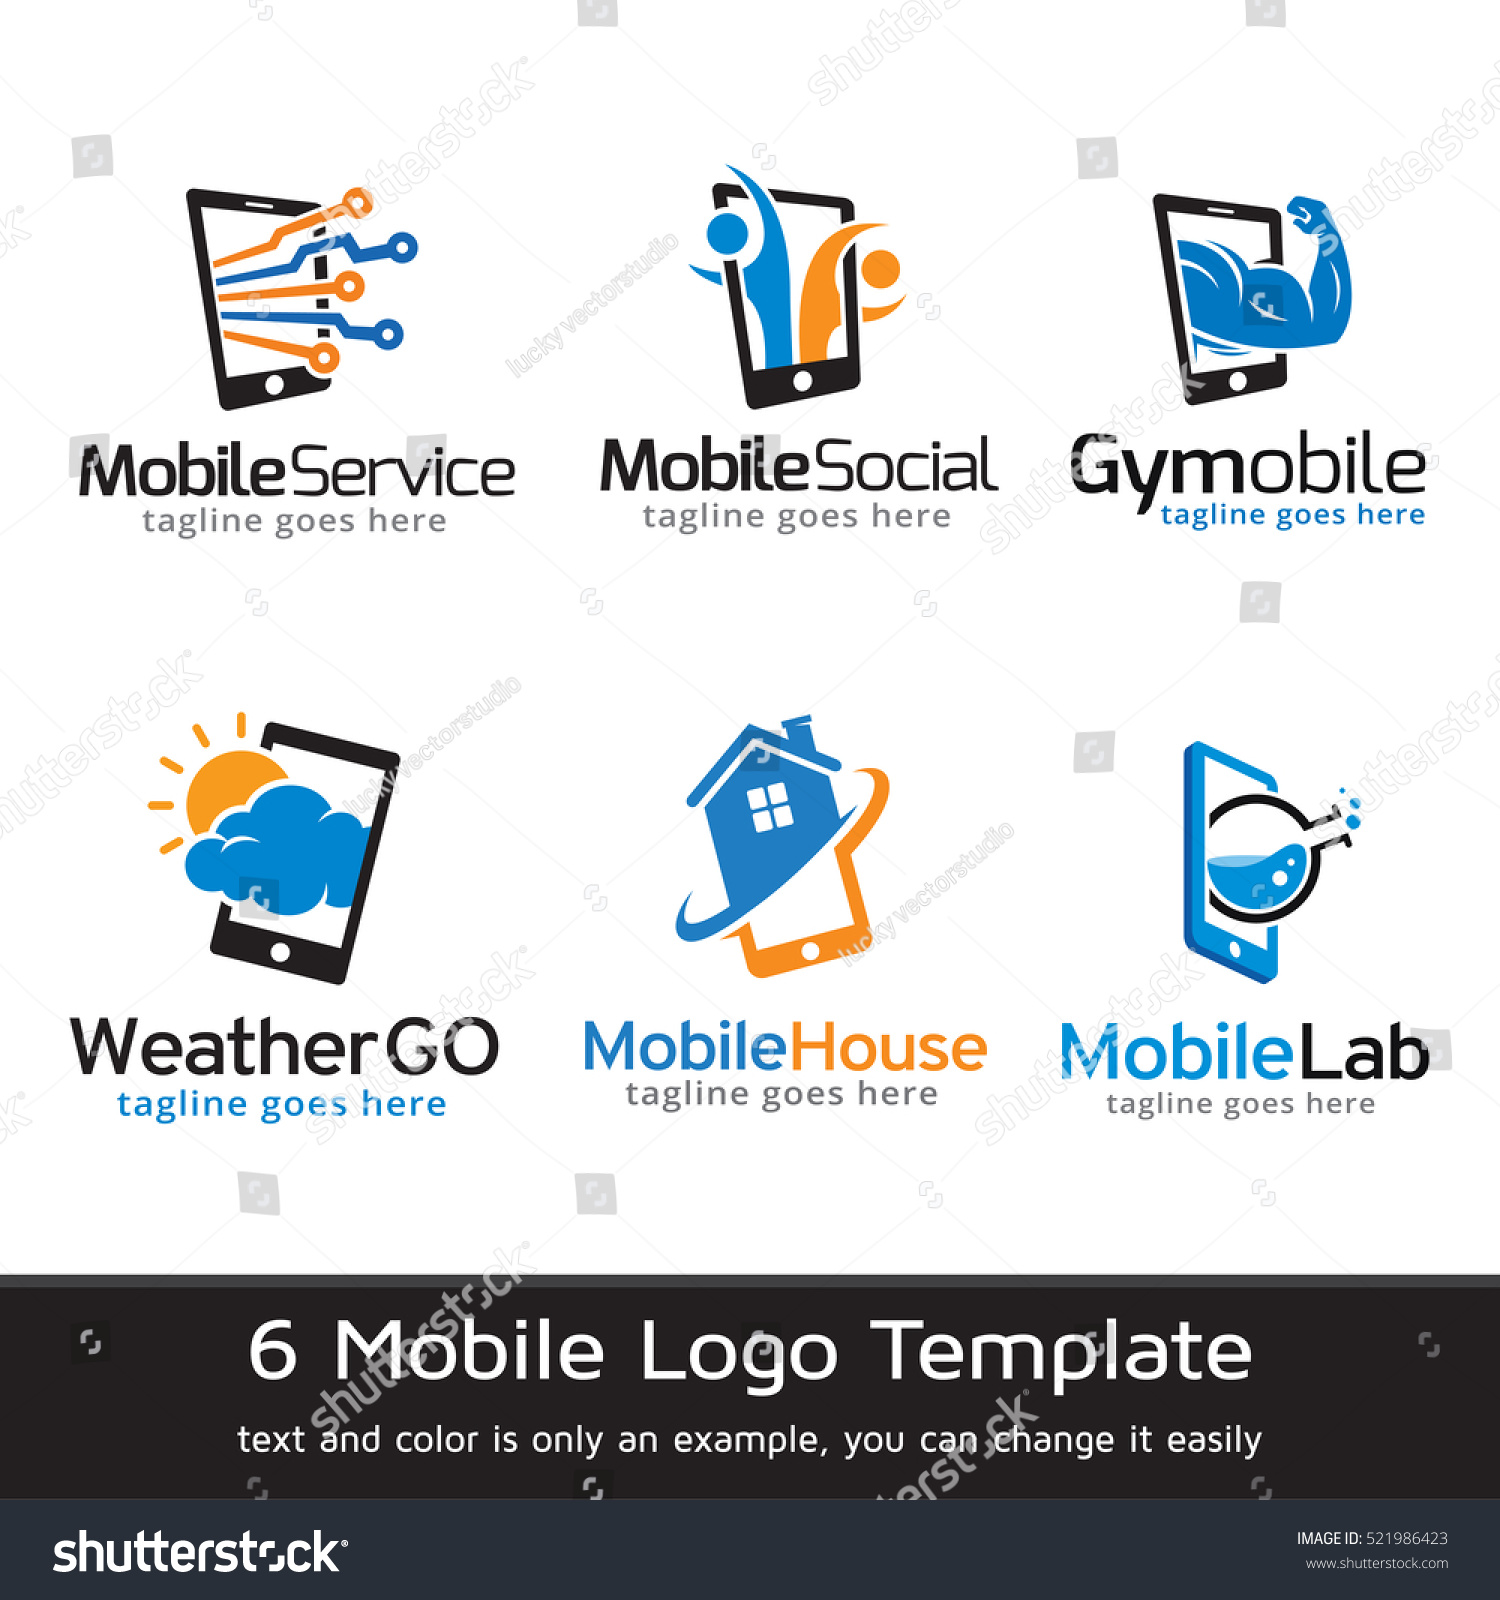 Mobile Phone Logo Template Design Vector Stock Vector ...